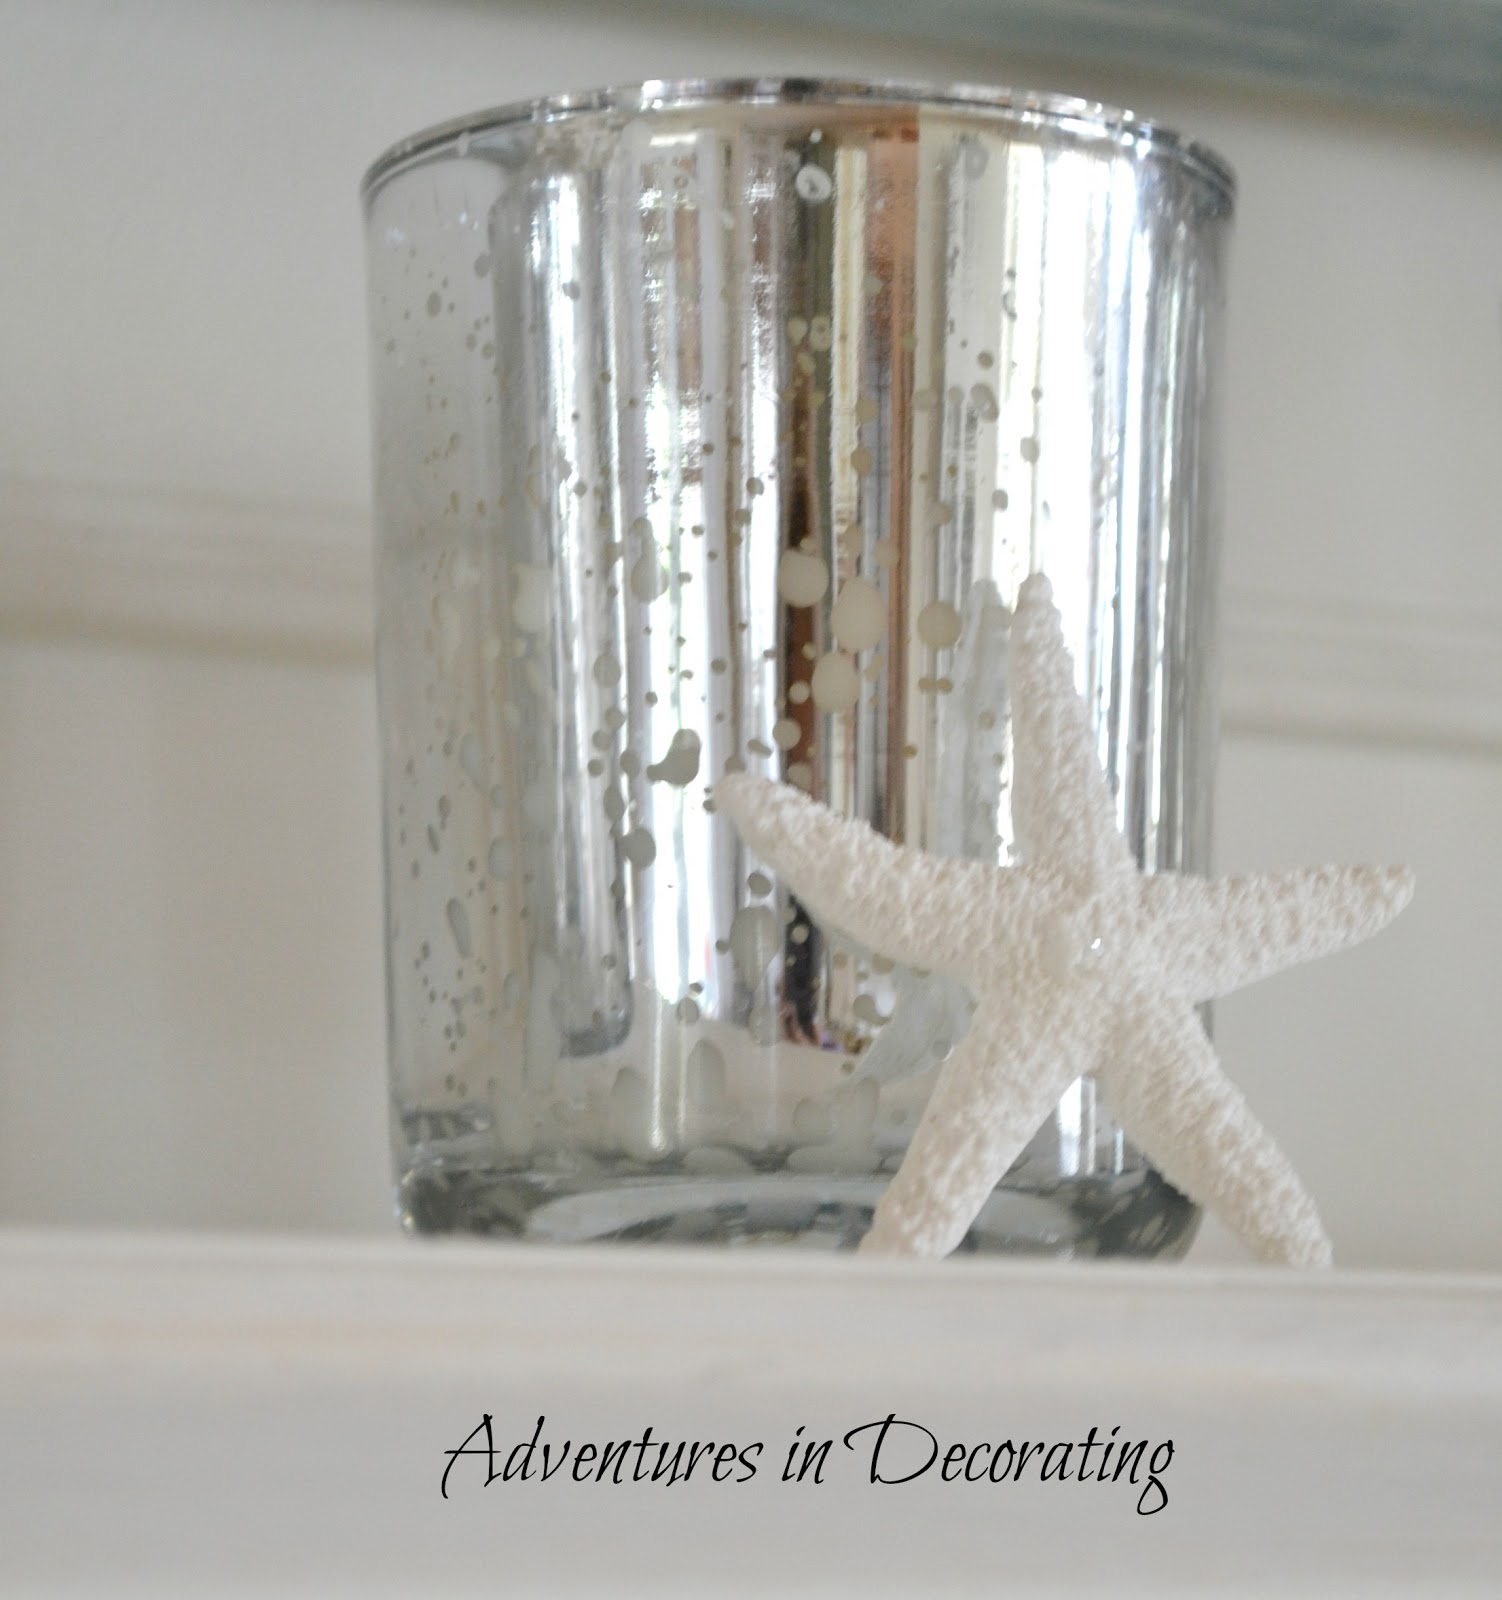 Going Coastal Pottery Barn Part I: Adventures In Decorating: My Never Ending Crush On Coastal